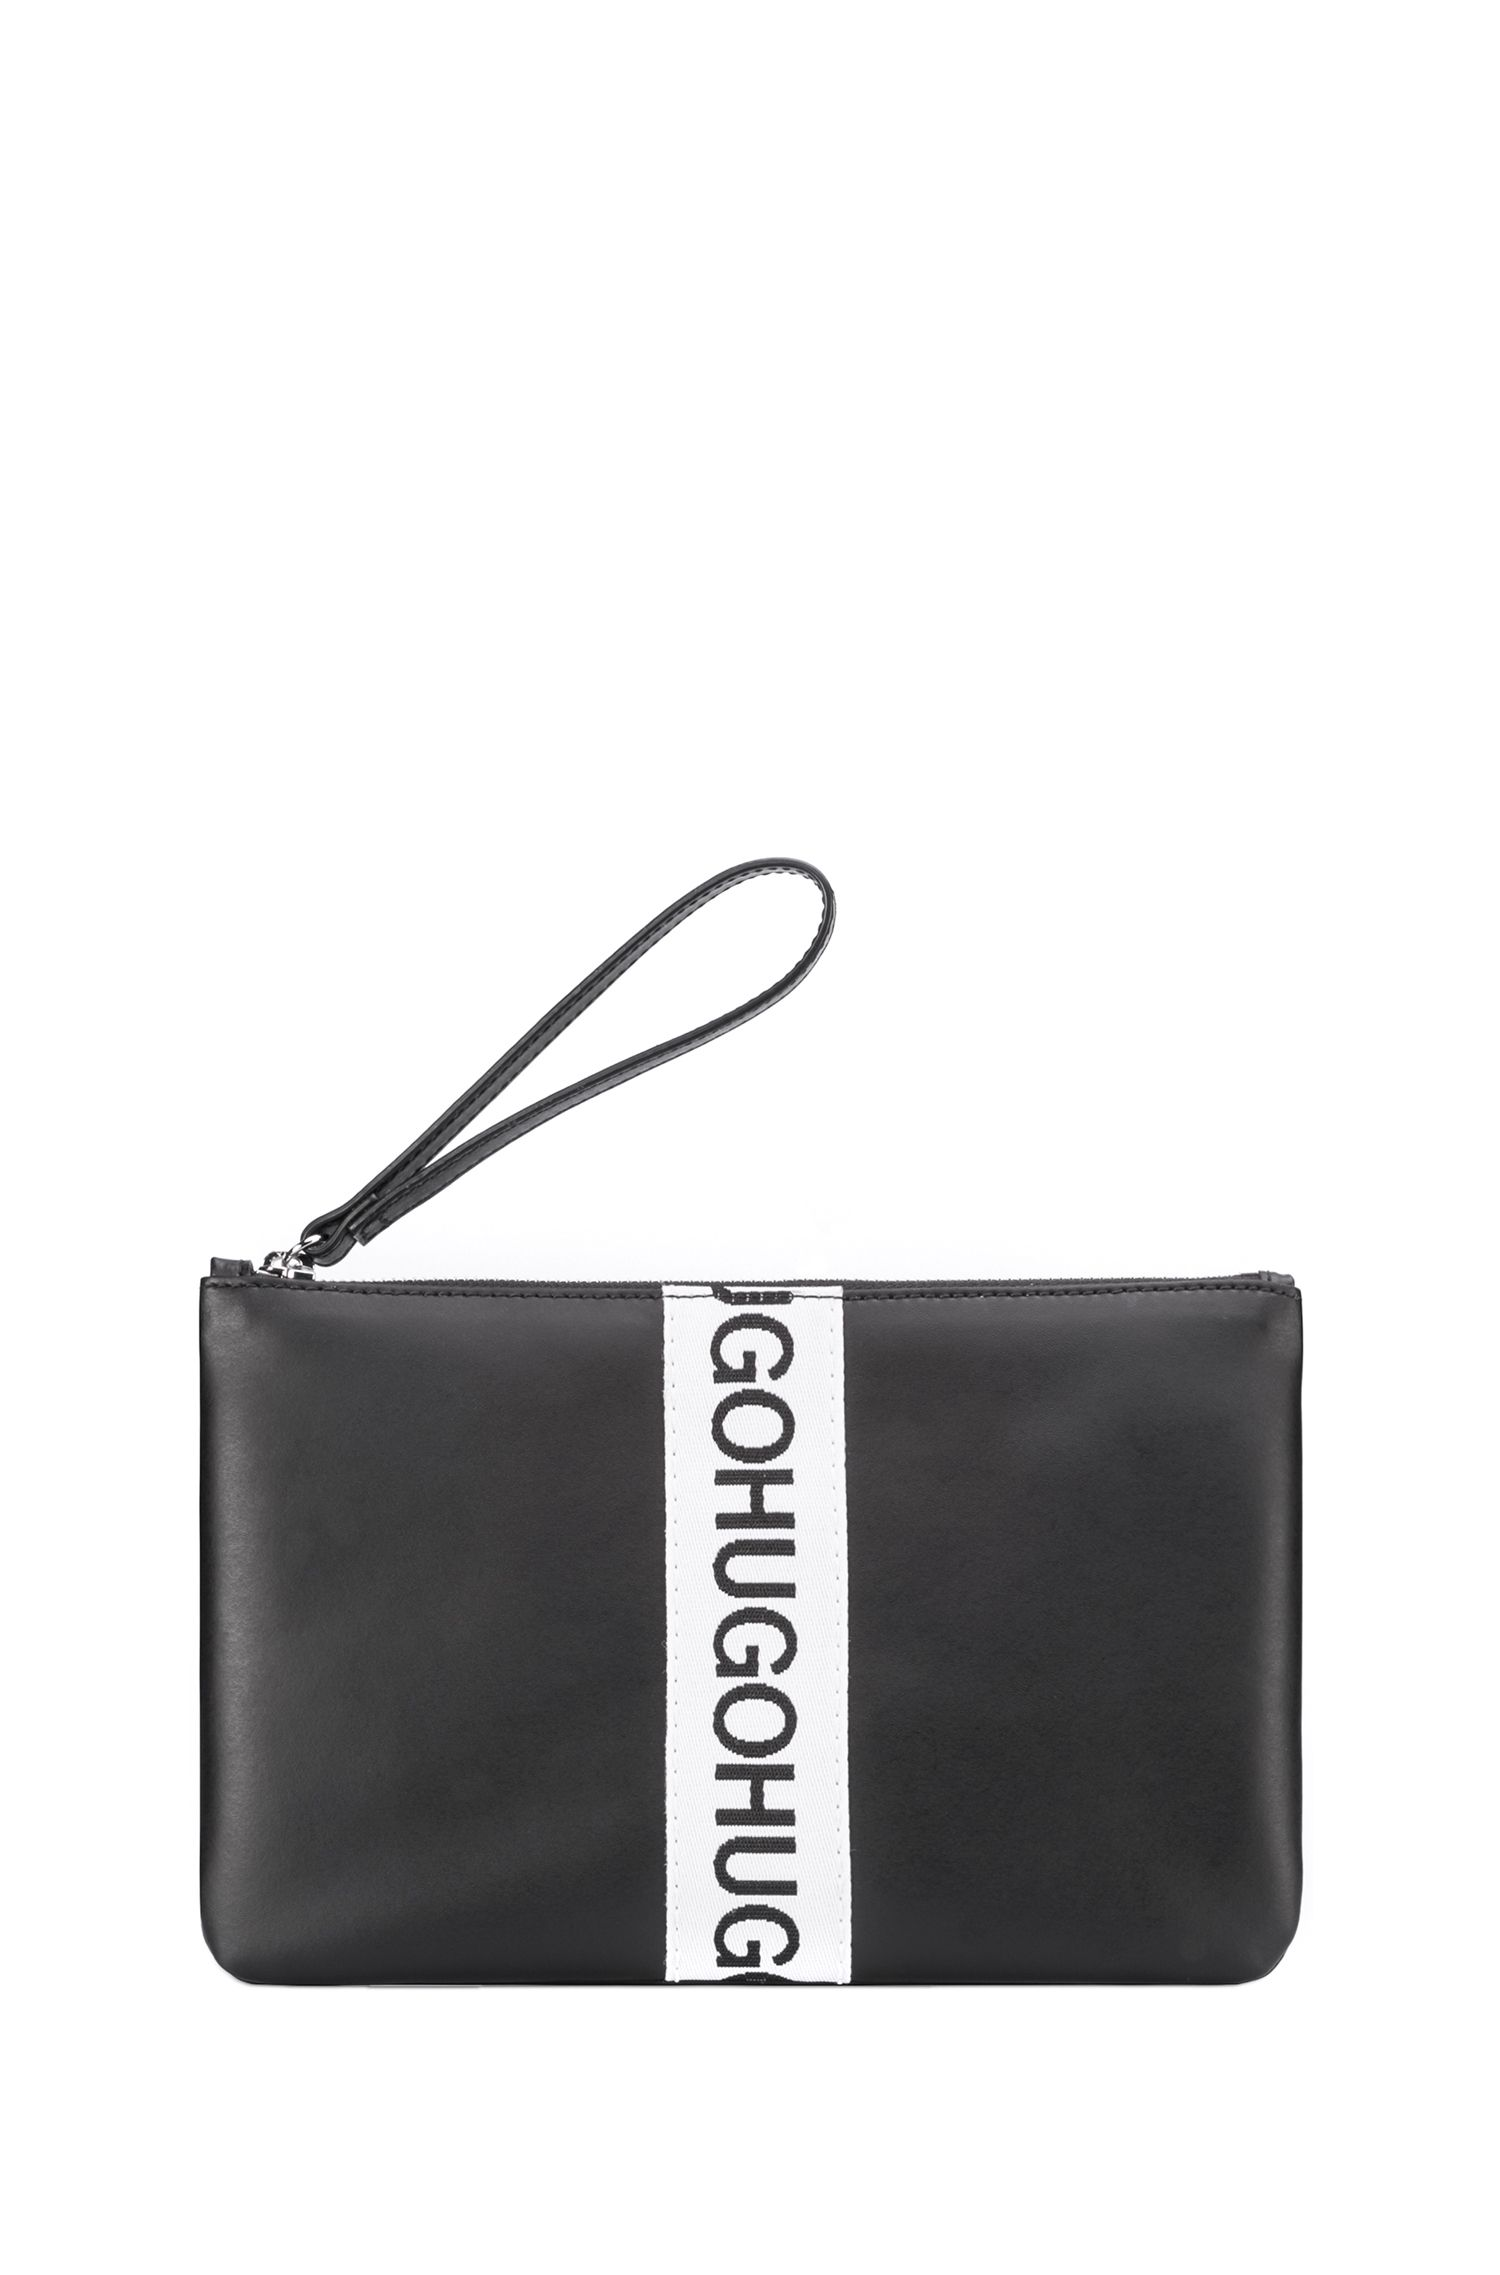 Leather pouch with repeat logo